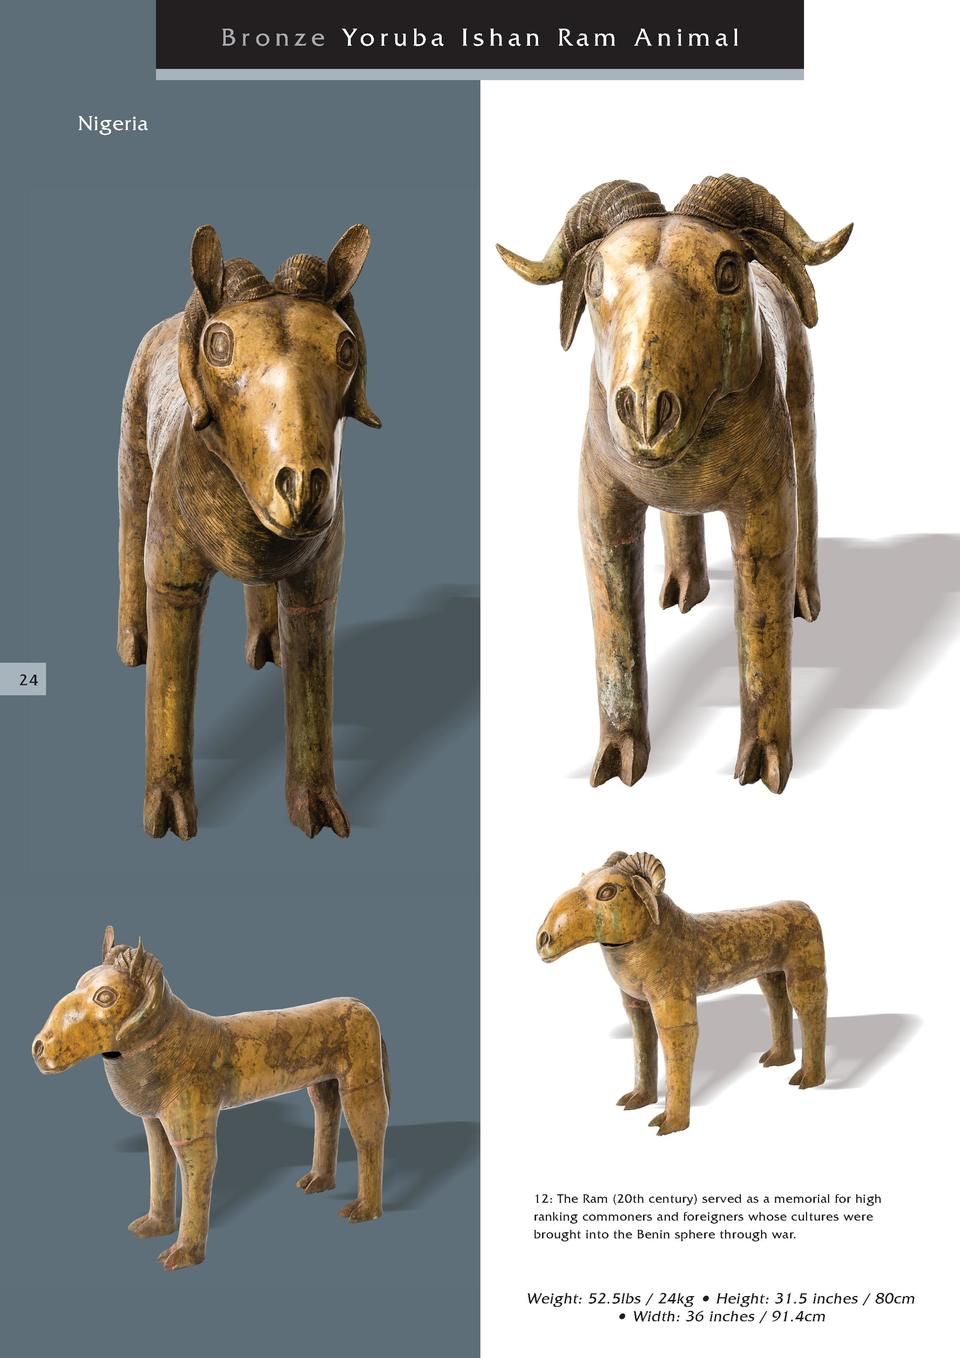 Br onze Yoruba Ishan Ram Animal Nigeria  24  12  The Ram  20th century  served as a memorial for high ranking commoners an...